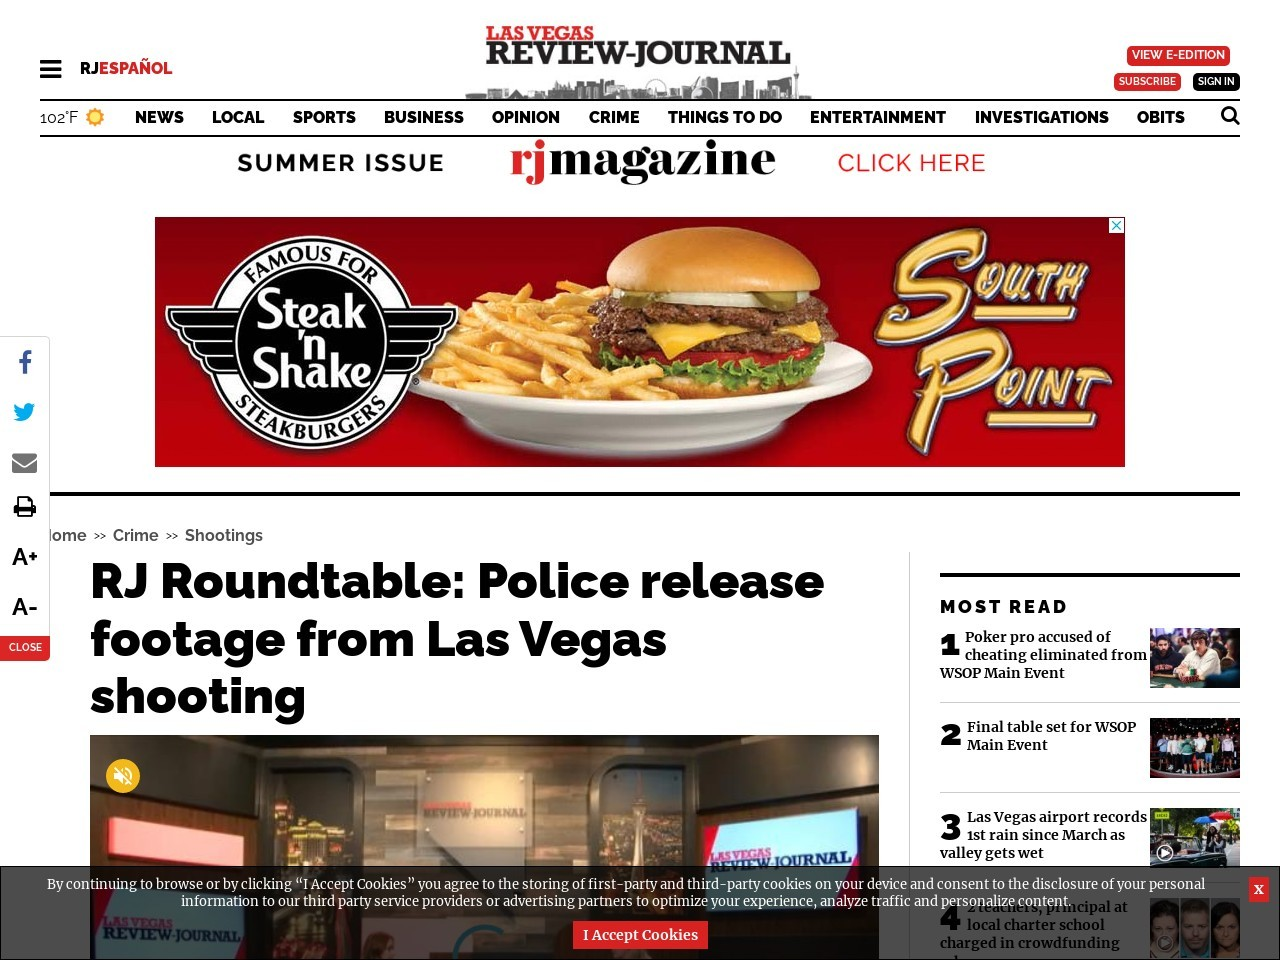 RJ Roundtable: Police release footage from Las Vegas shooting